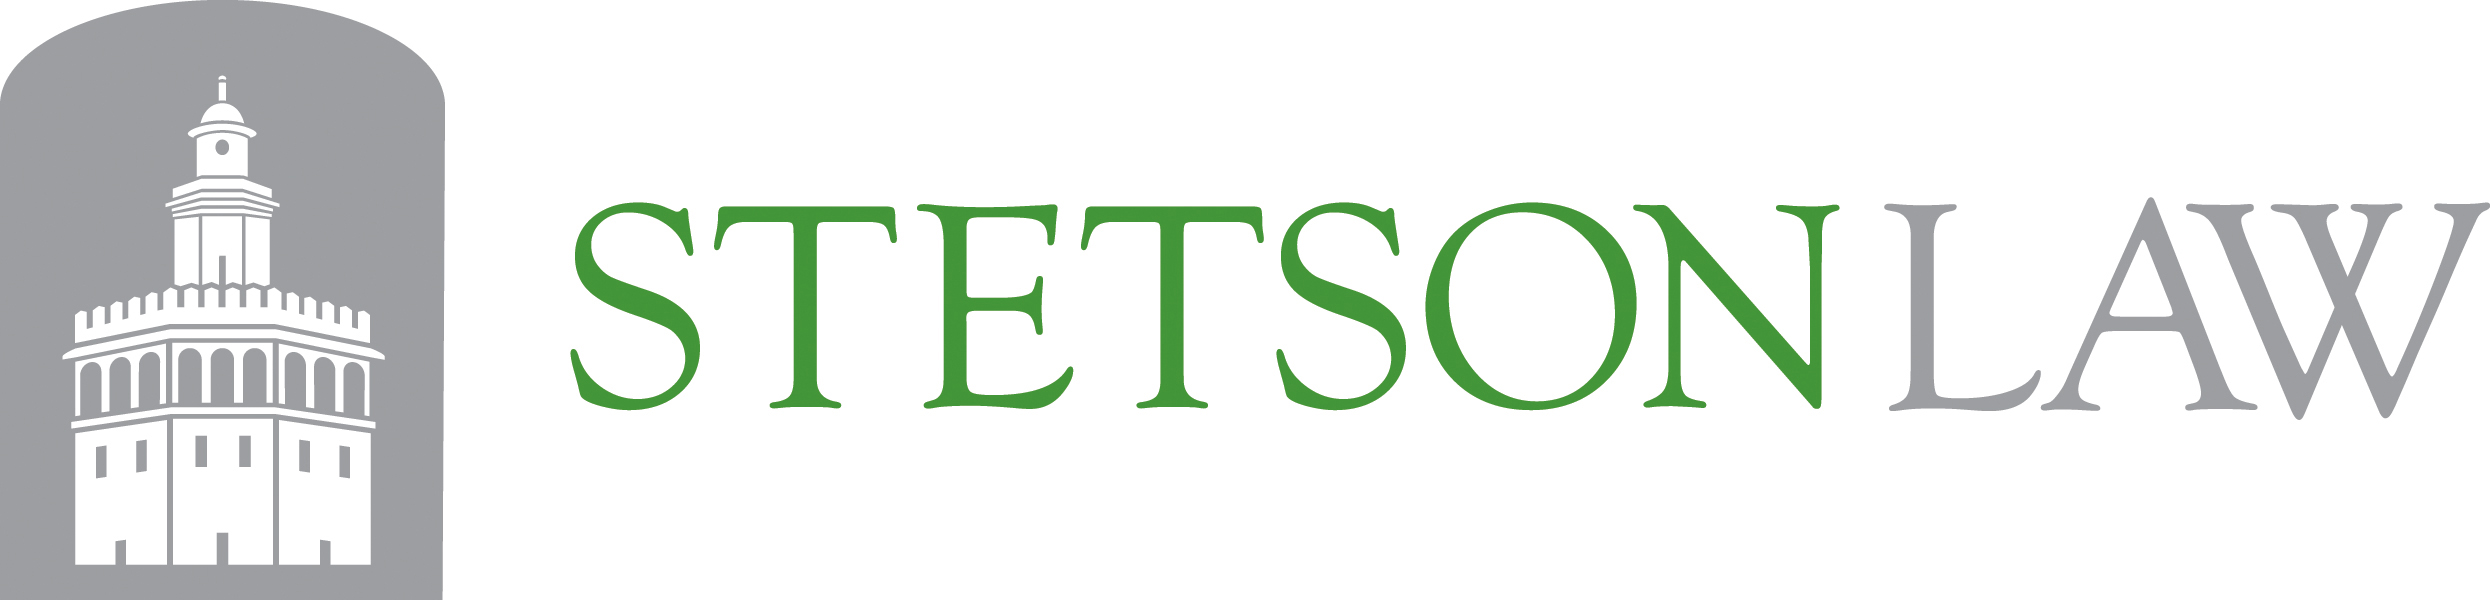 Stetson Law Brand Standards 5f54e8344df